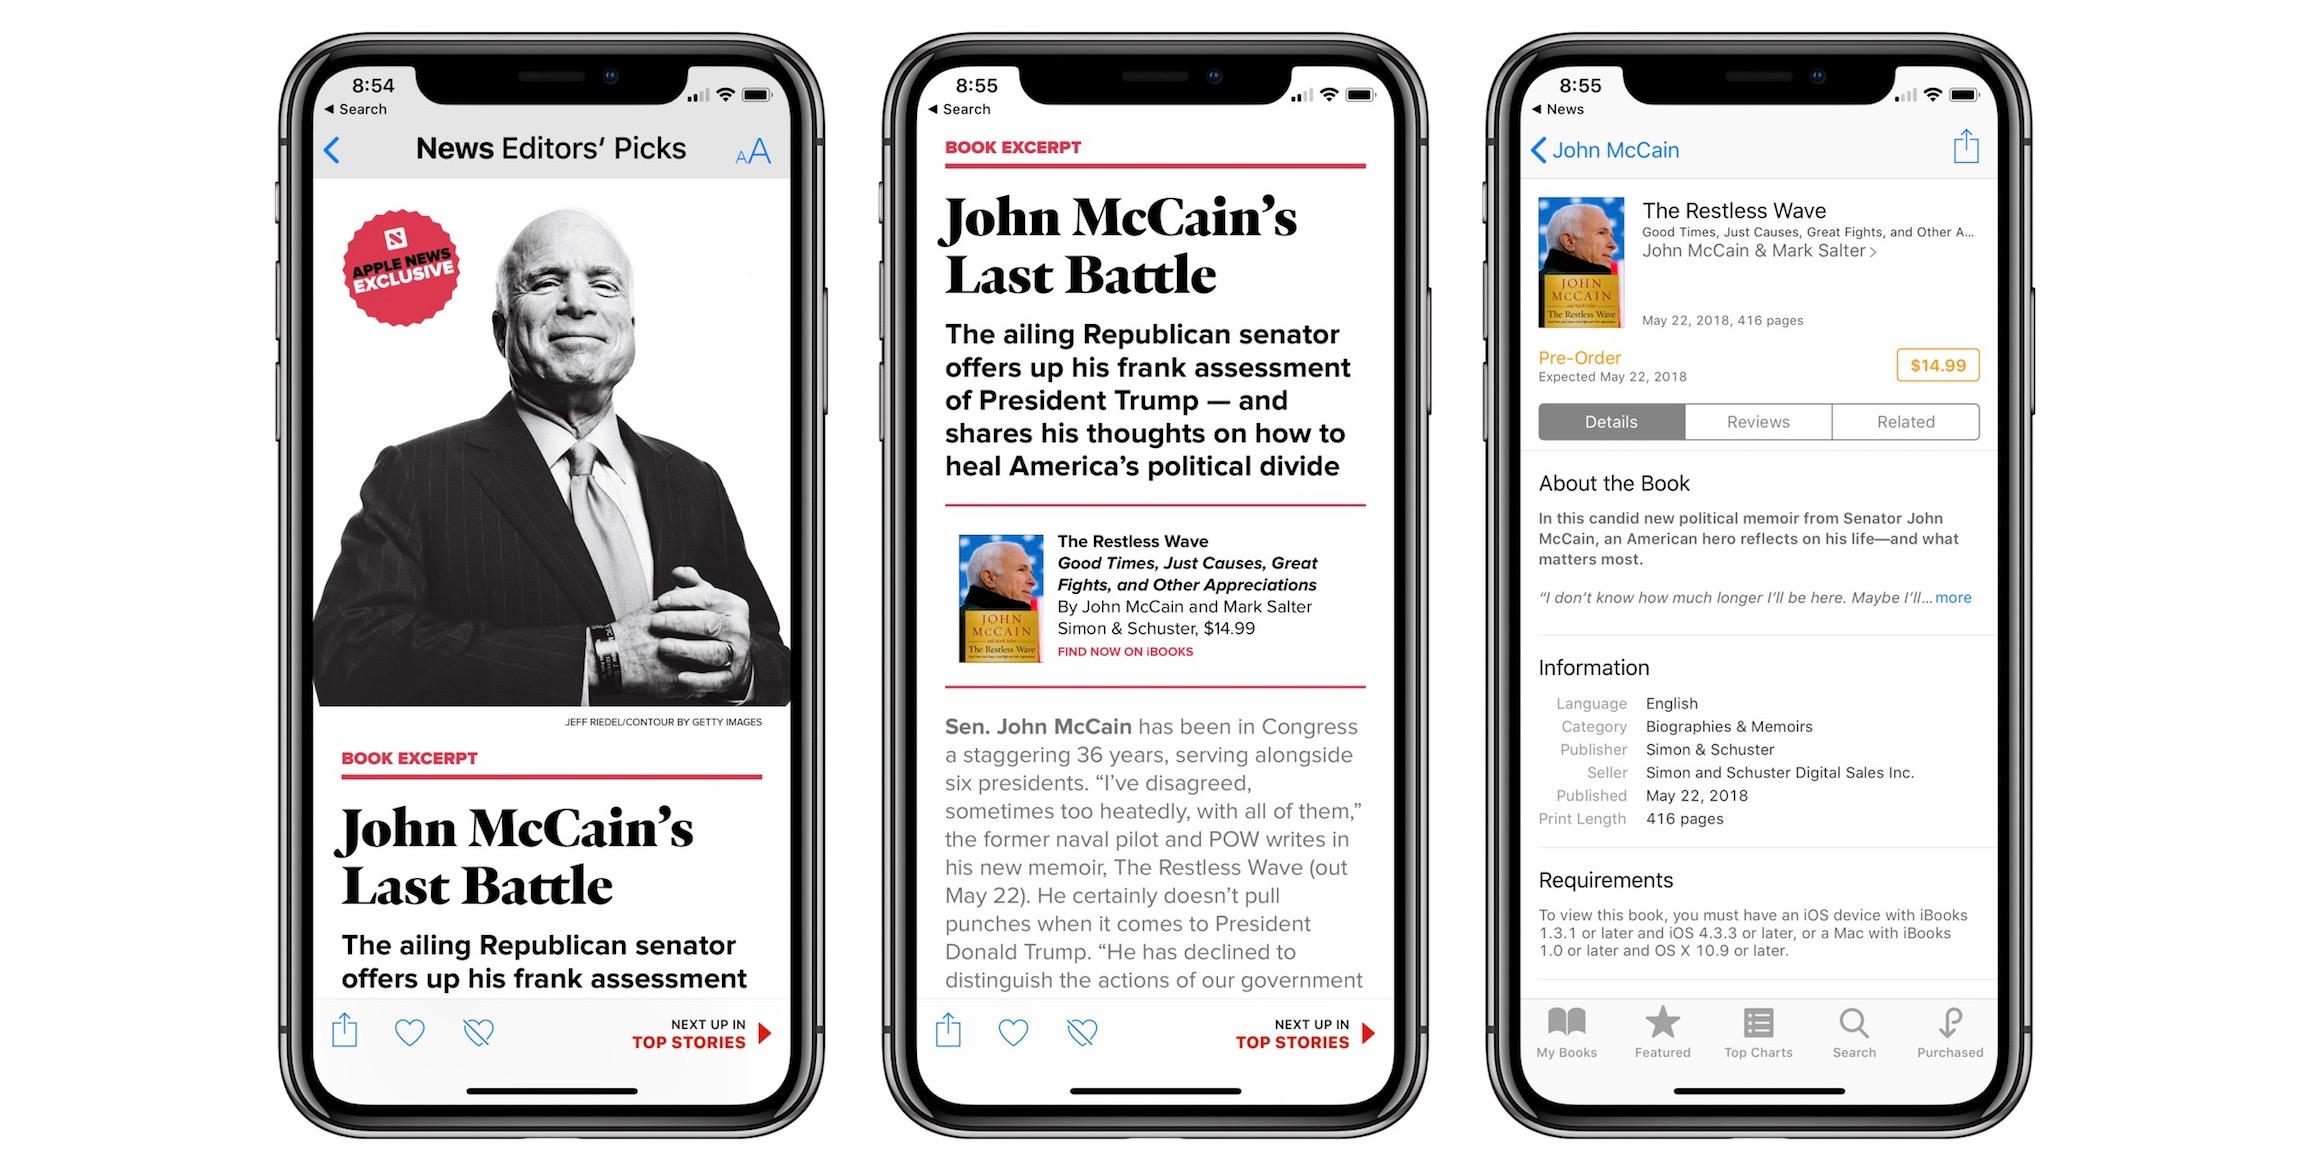 Apple hiring trends further signal its growing interest in editorial content